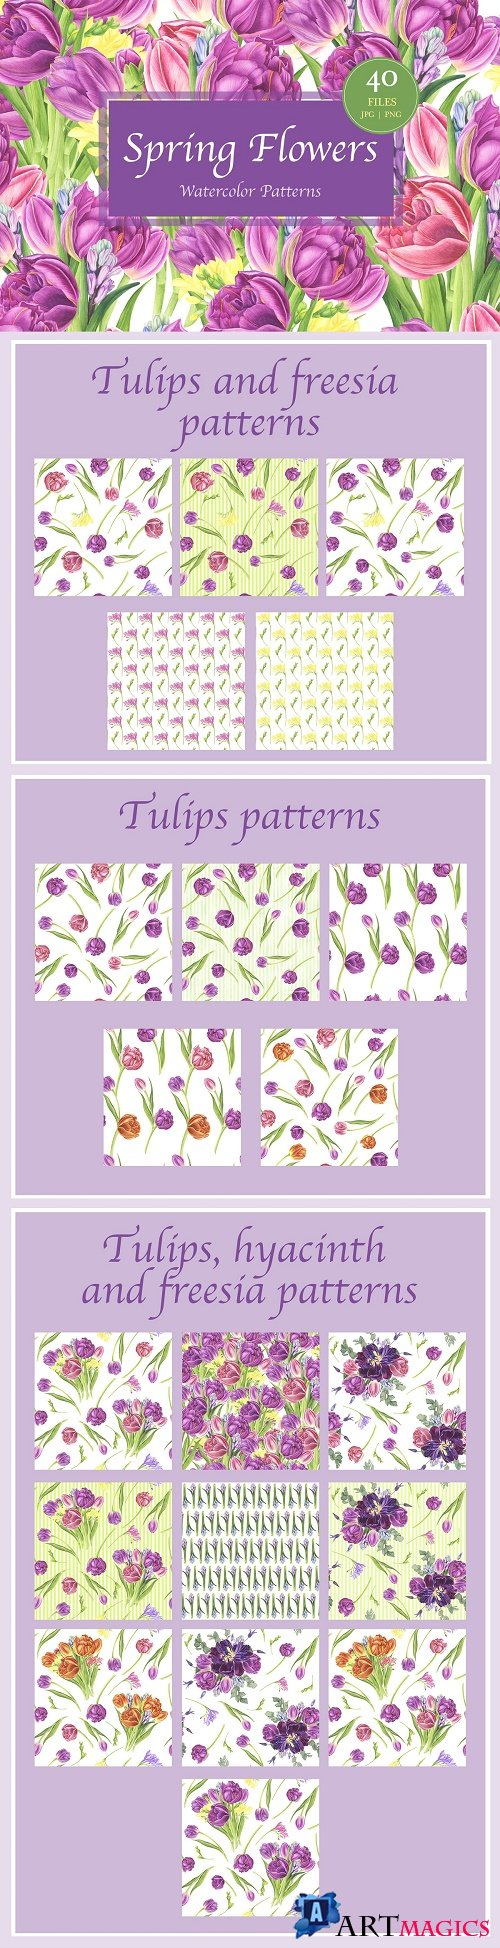 Spring Flowers Watercolor Patterns - 3623326